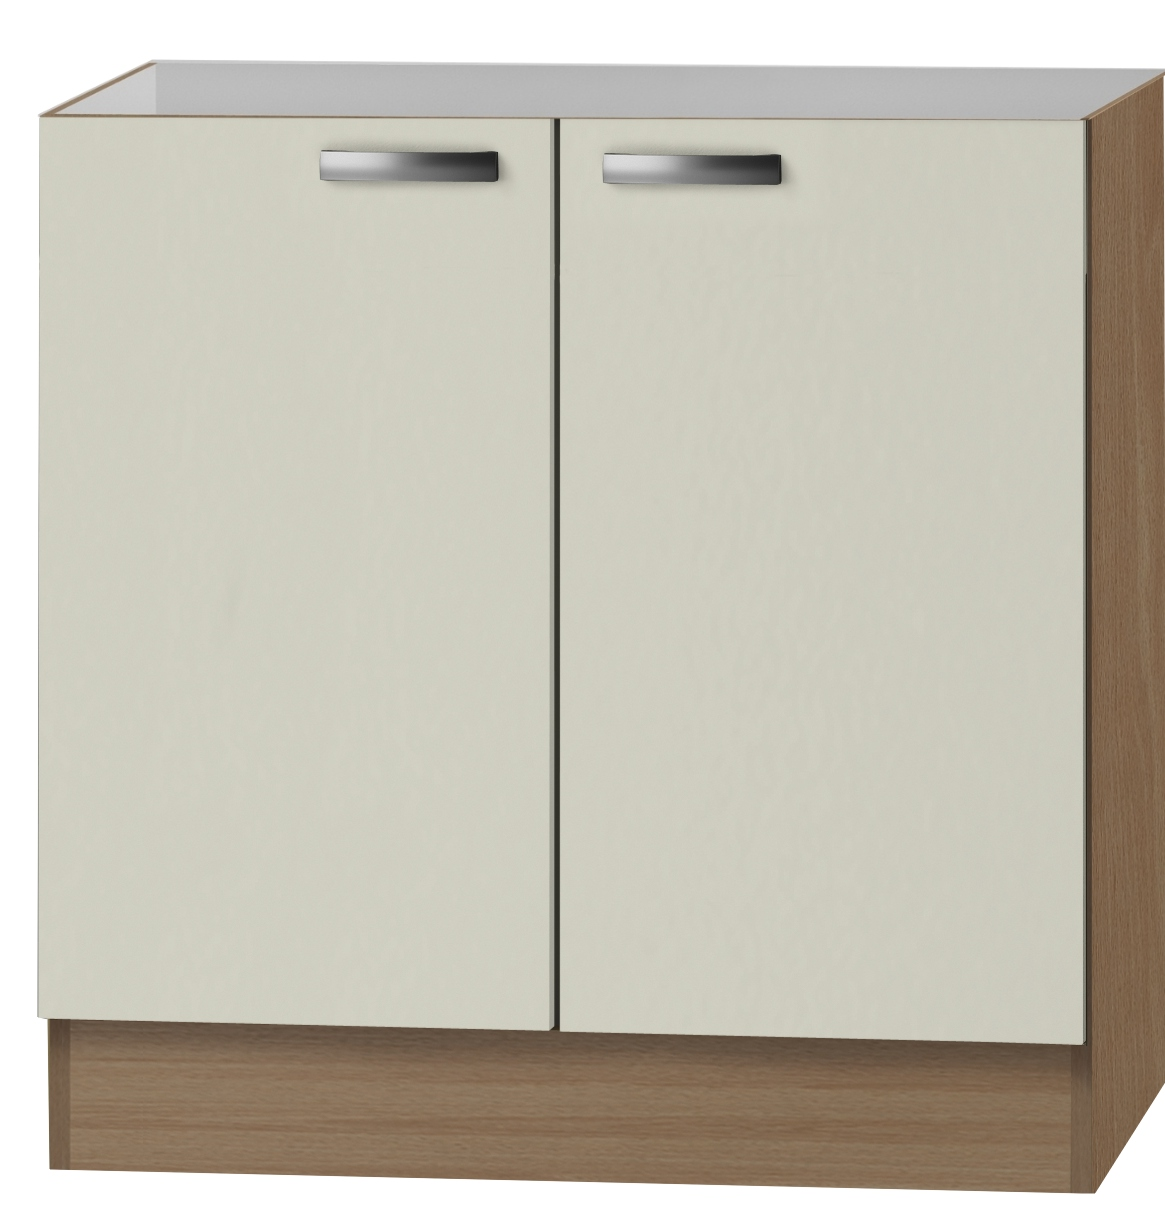 klassik60 sp lenschrank 80 cm breit creme splo806 4011935840261 ebay. Black Bedroom Furniture Sets. Home Design Ideas